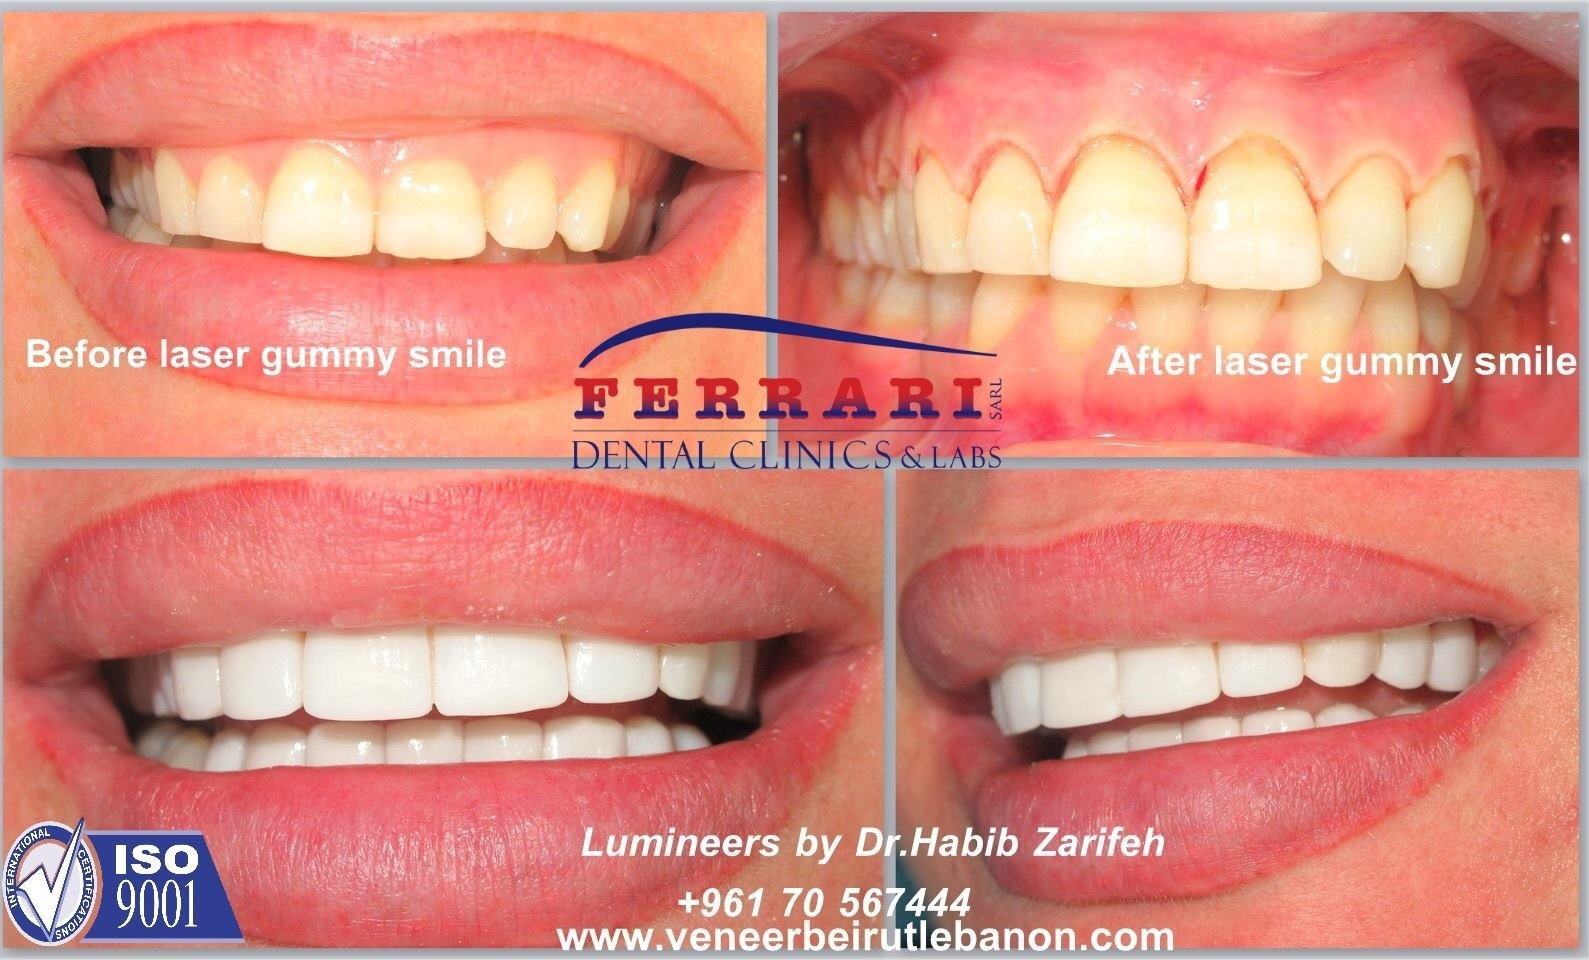 October 2014 Hollywood Smile Cost In Lebanon By Elite